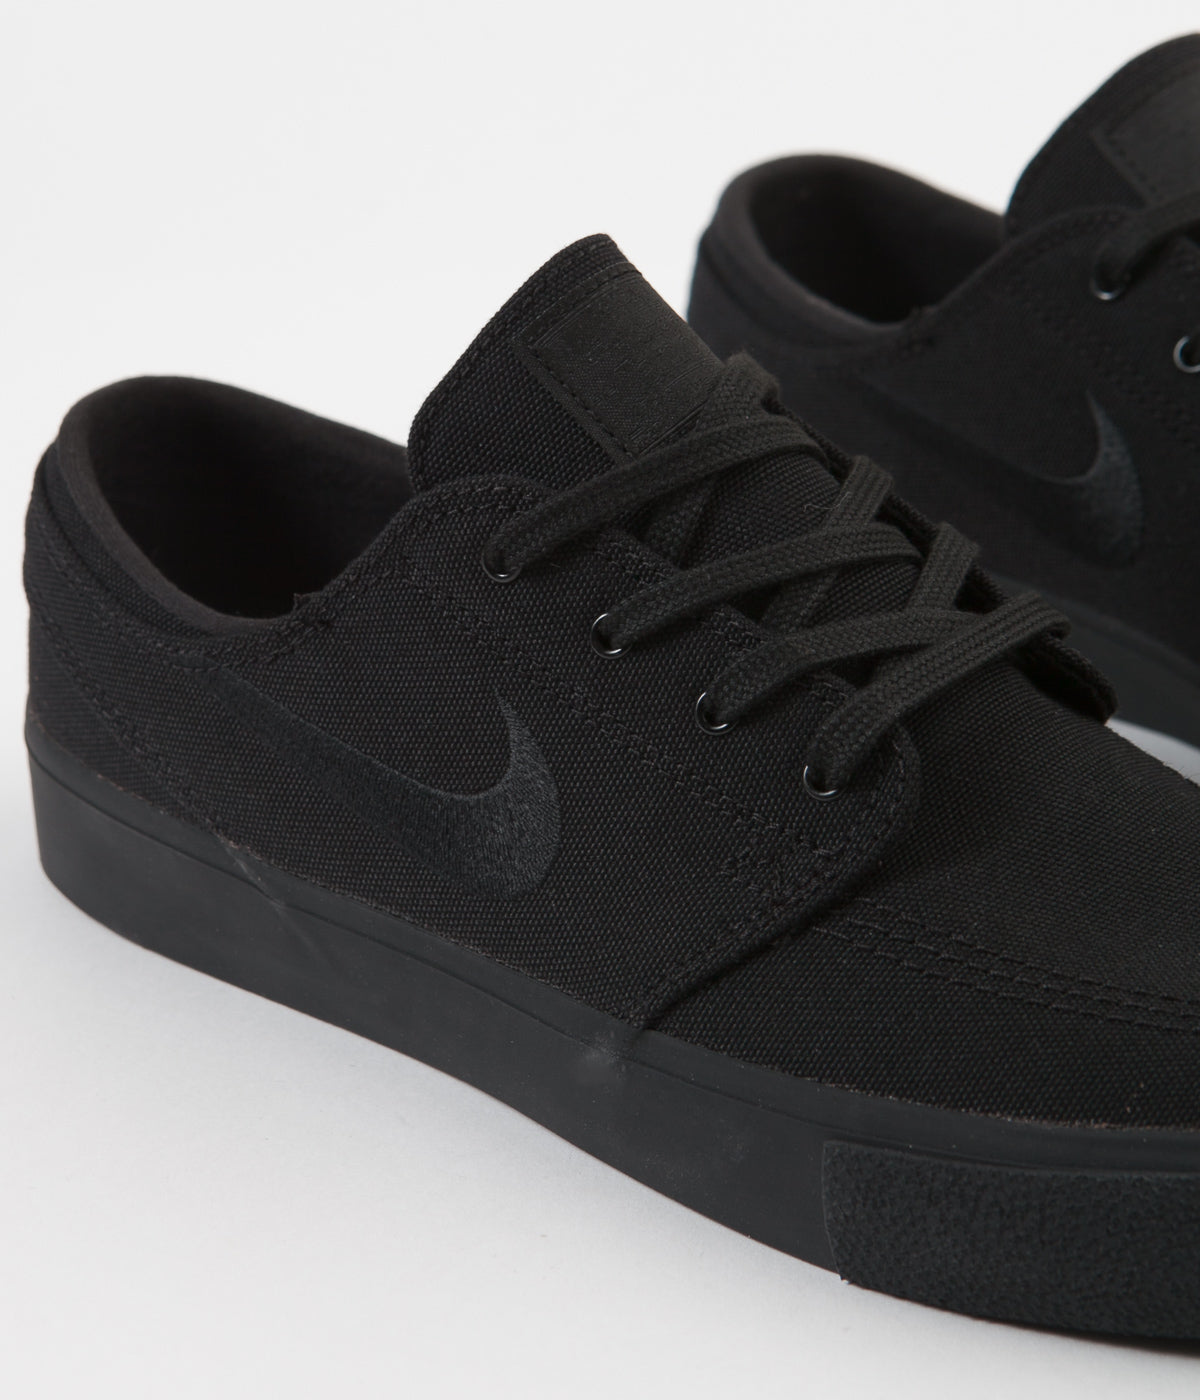 Nike SB Janoski Canvas Remastered Shoes - Black / Black - Black - Black